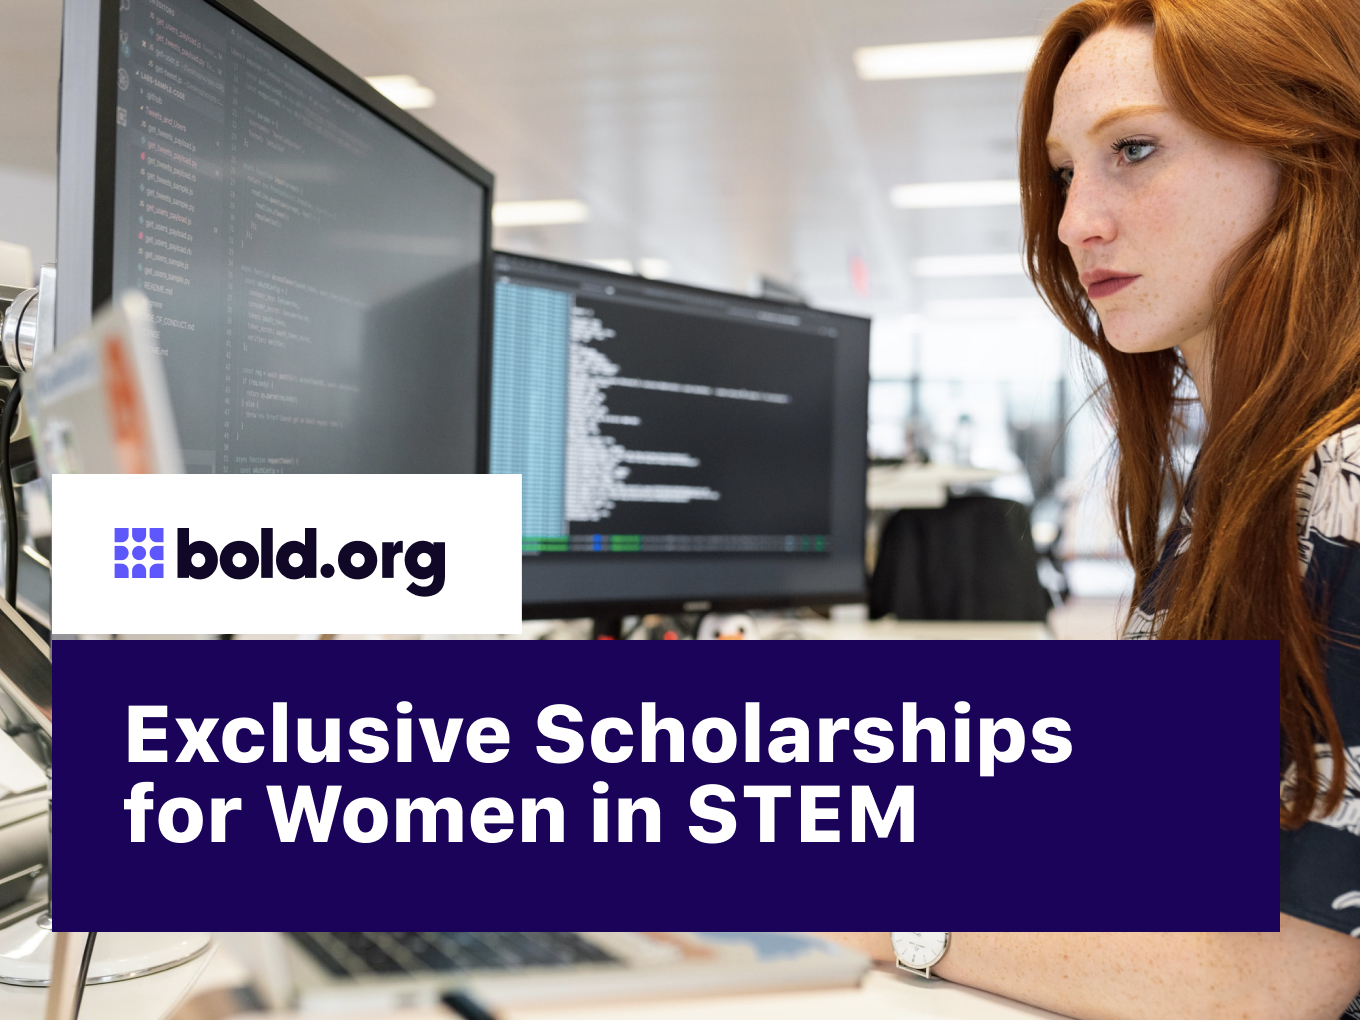 7 Great Scholarships for Women in STEM